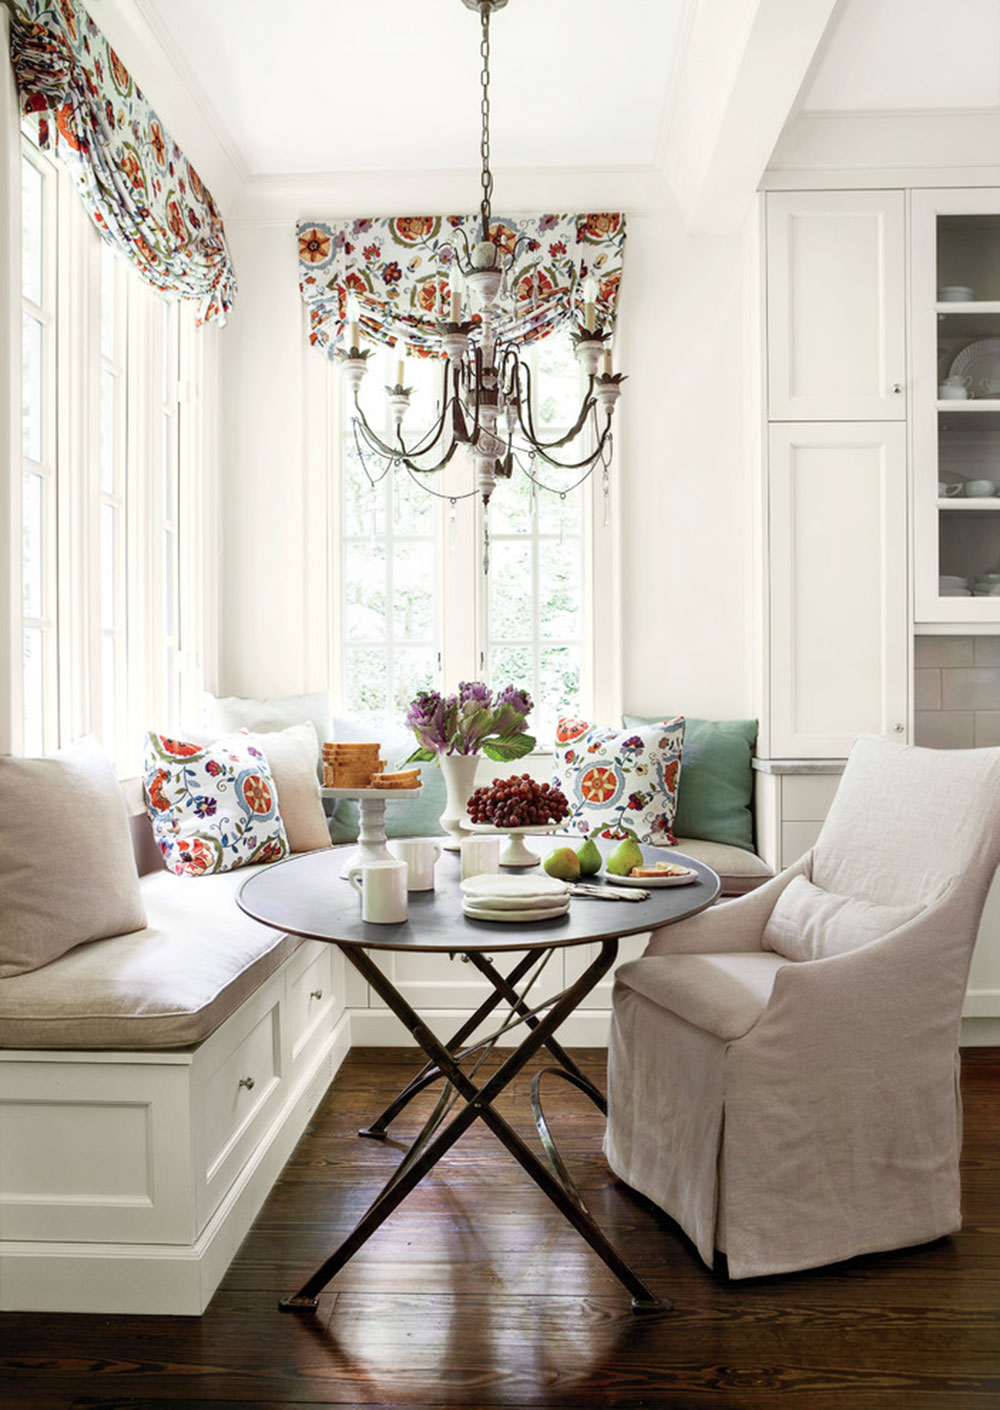 Breakfast Nook Design Ideas For Awesome Mornings8